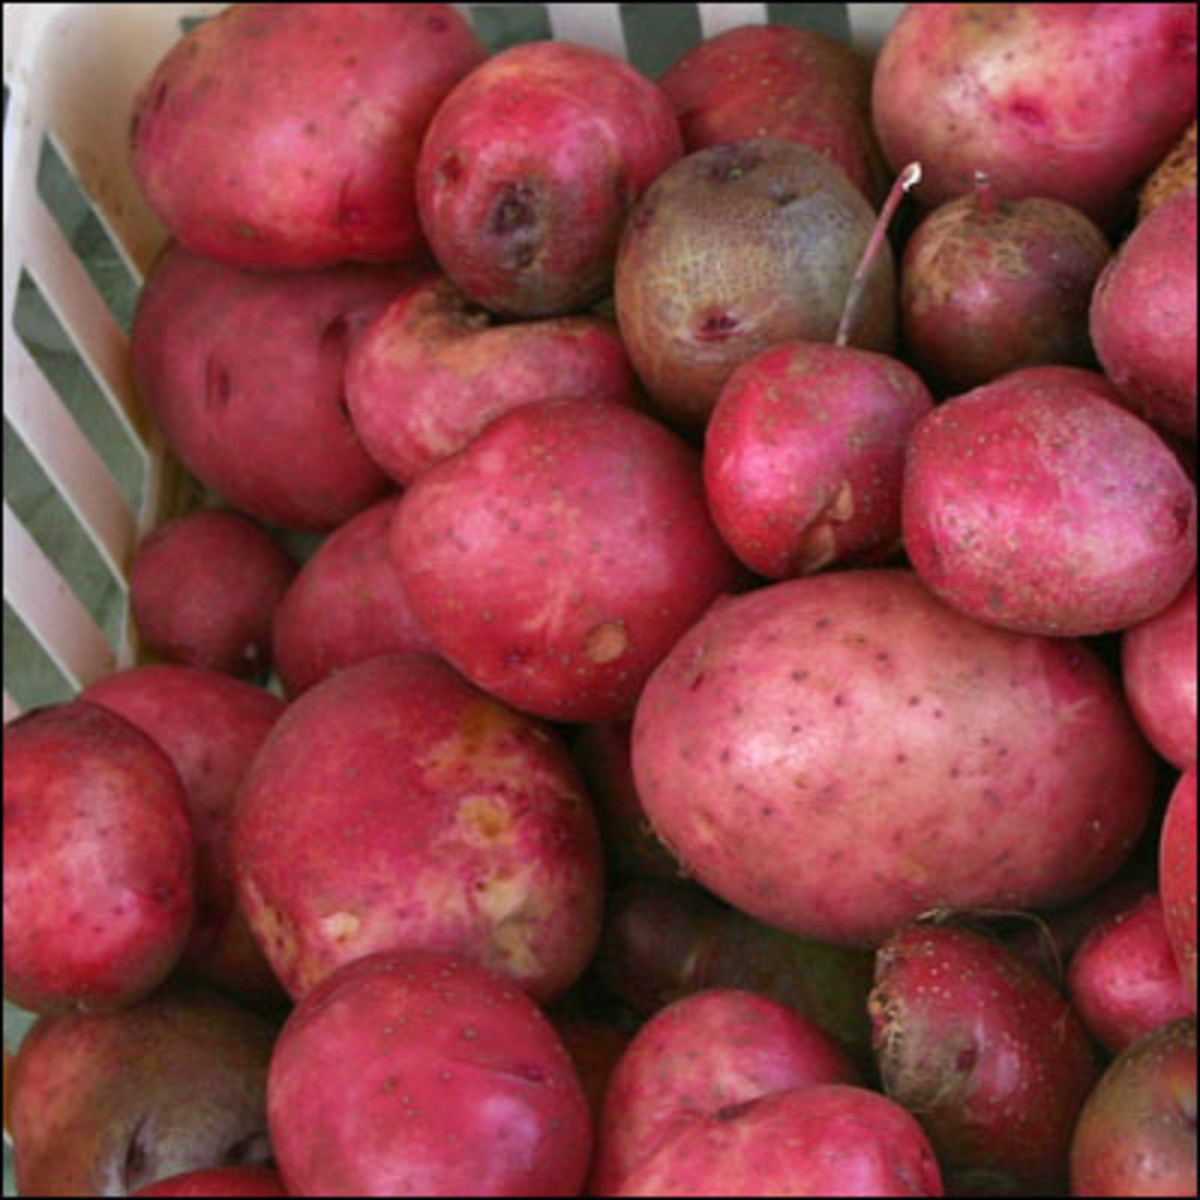 A pile of red potatoes.